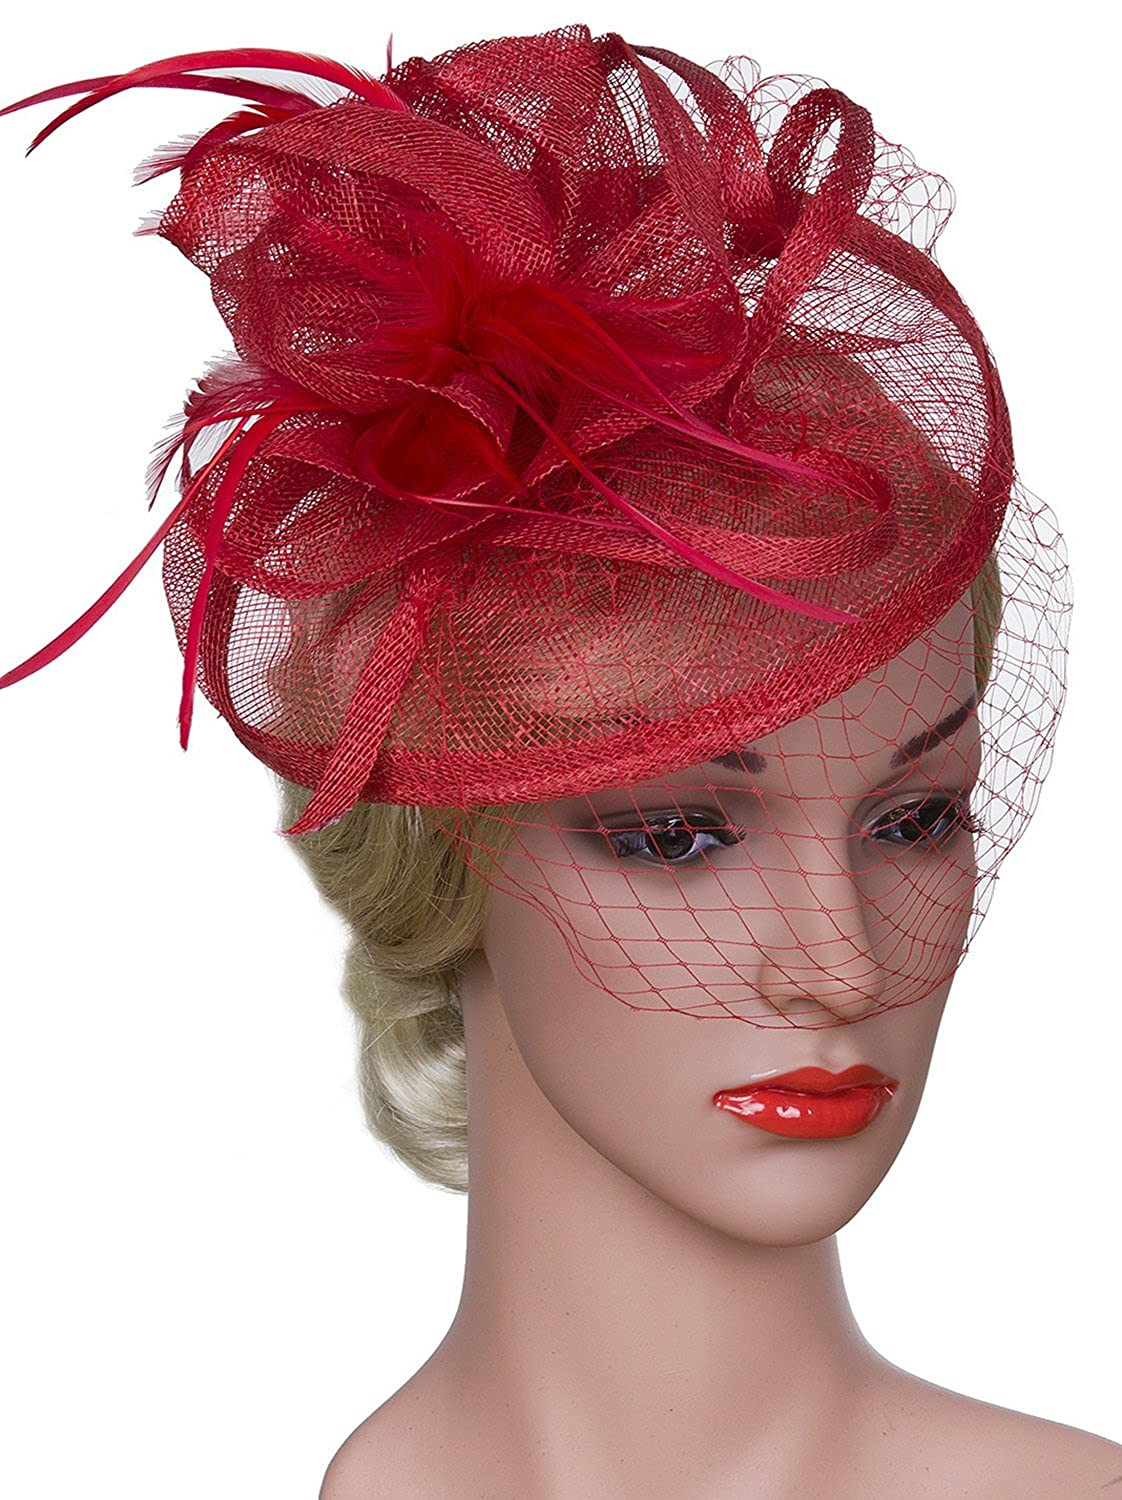 Vijiv Women Vintage Derby Fascinator Hat With Veil Pillbox Headband Feather Cocktail Tea Party JXJ-FH3308Y